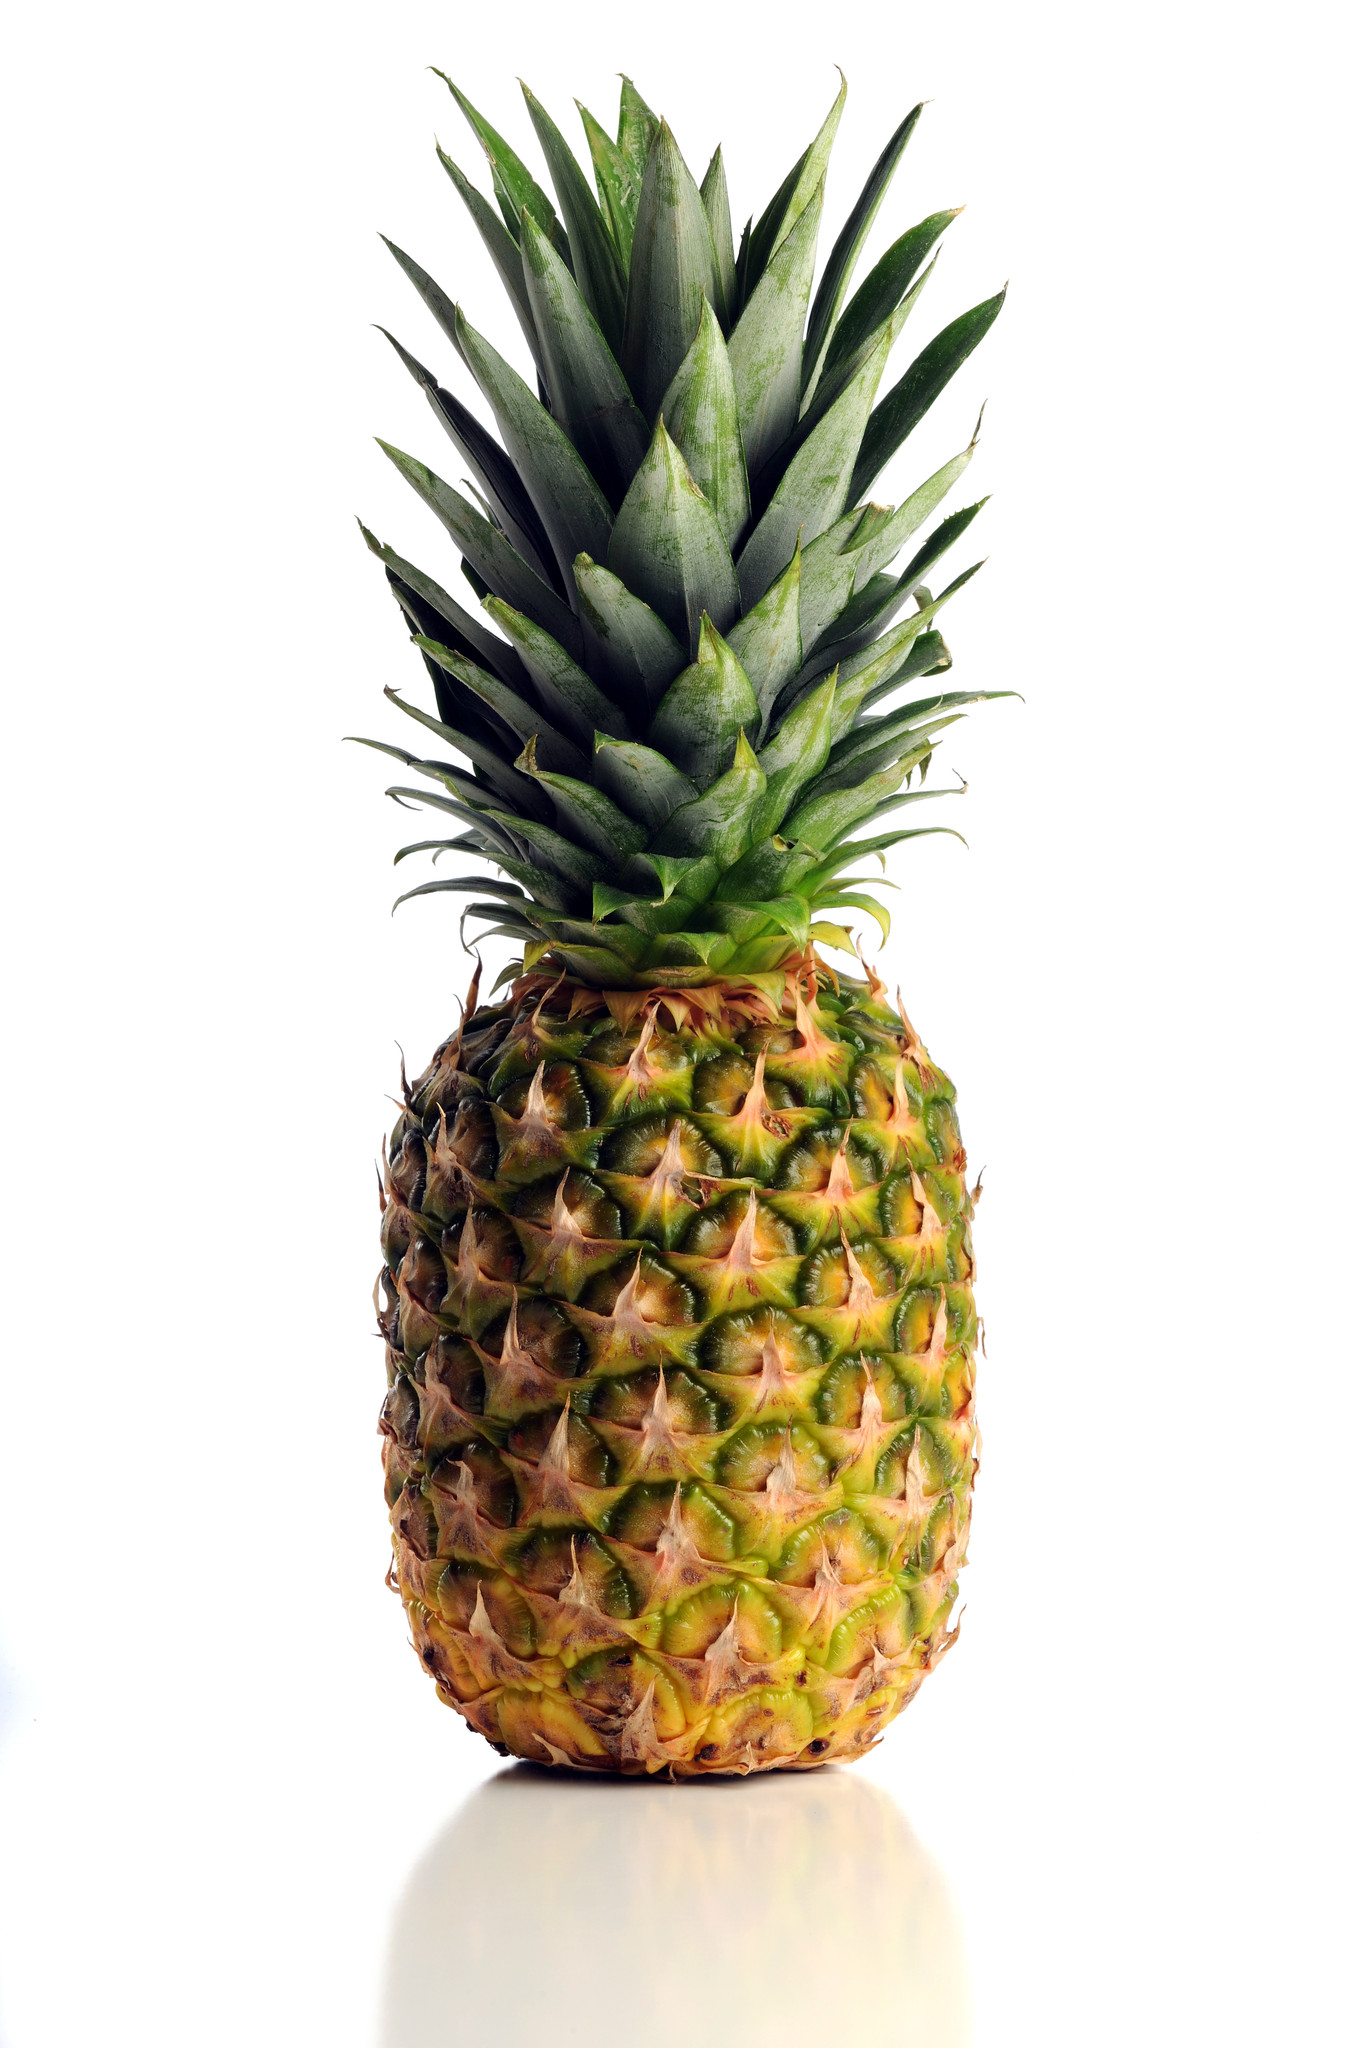 Images of Pineapple | 1365x2048